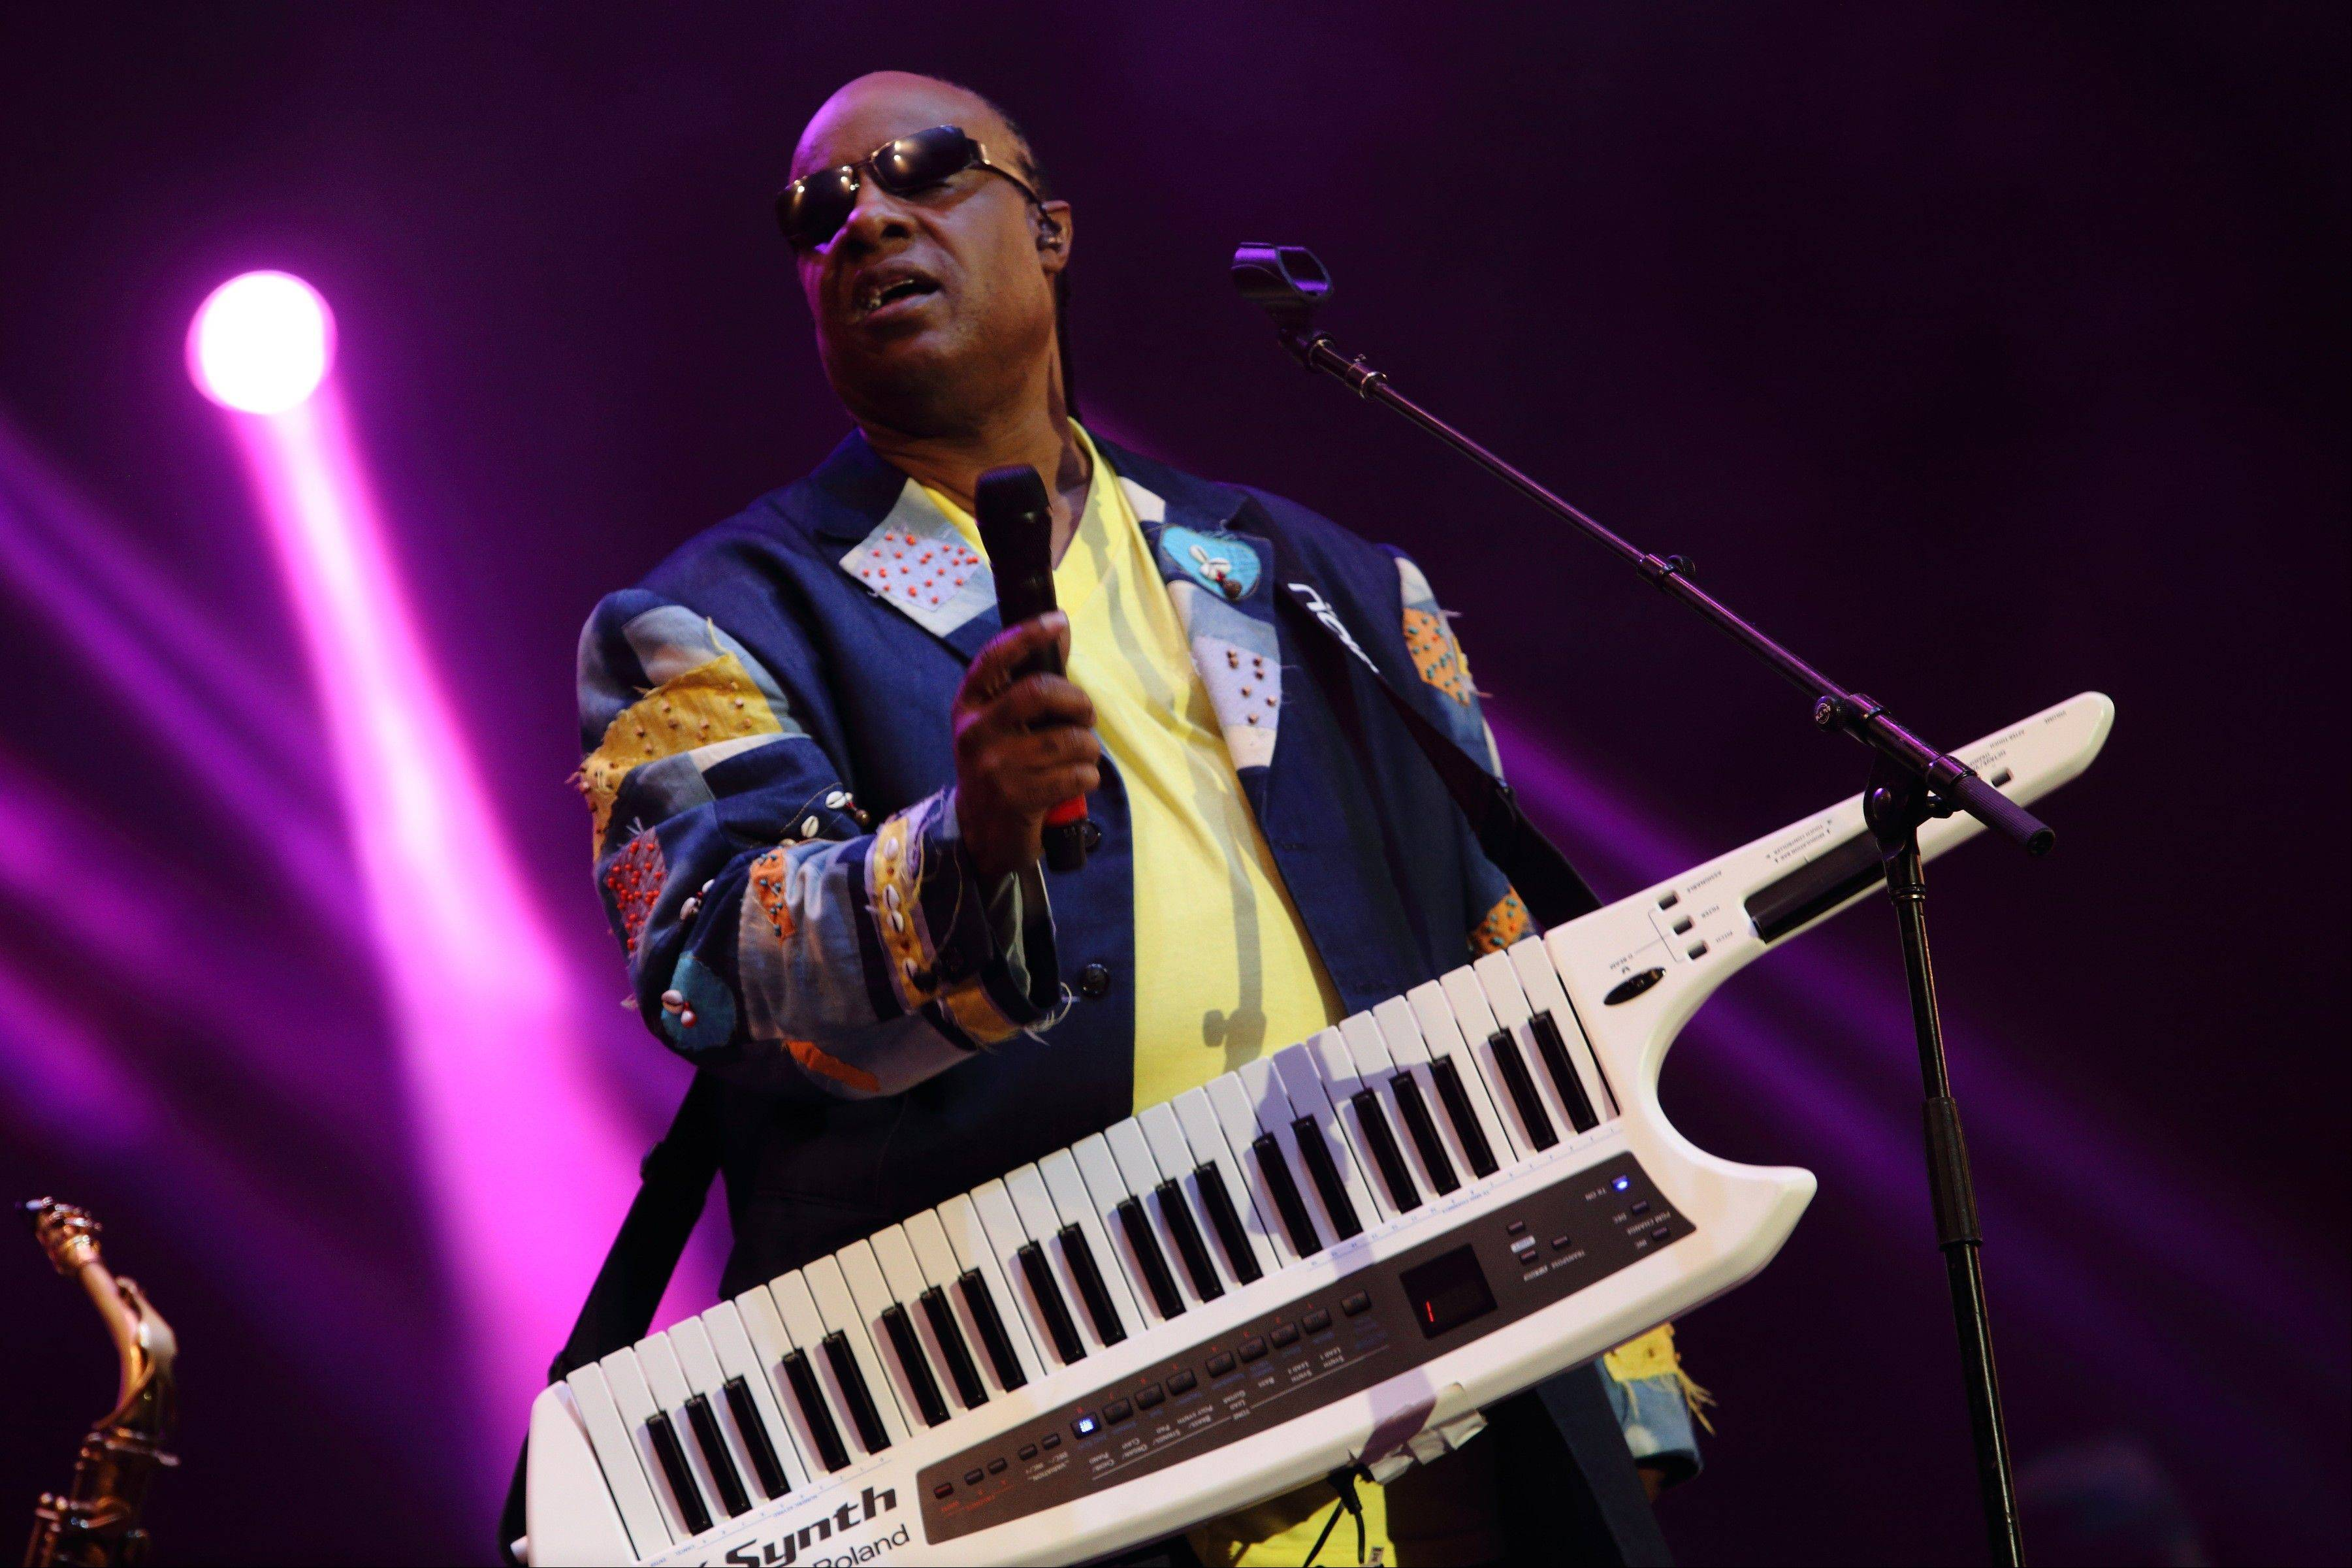 Stevie Wonder will participate in the second Global Citizen Festival on Sept. 28, 2013, in New York�s Central Park with Kings of Leon, John Mayer and Alicia Keys.